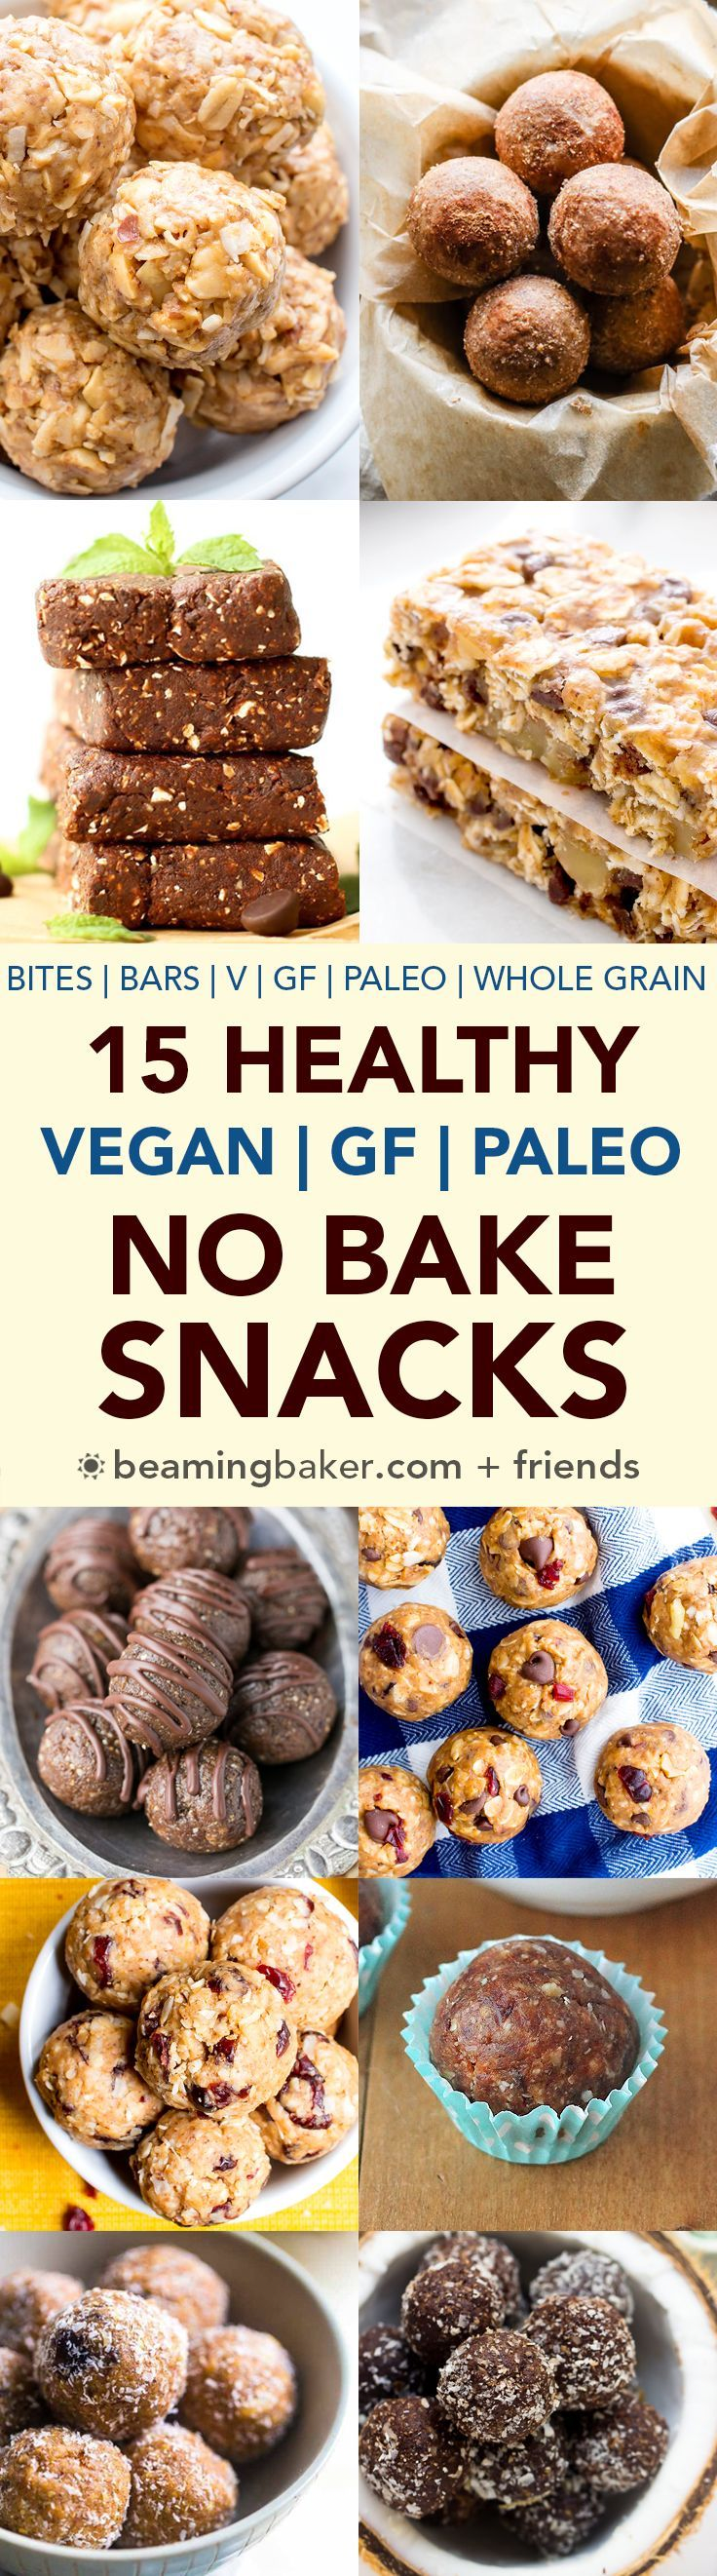 15 Healthy Gluten Free Vegan No Bake Snacks (V, GF, Paleo)